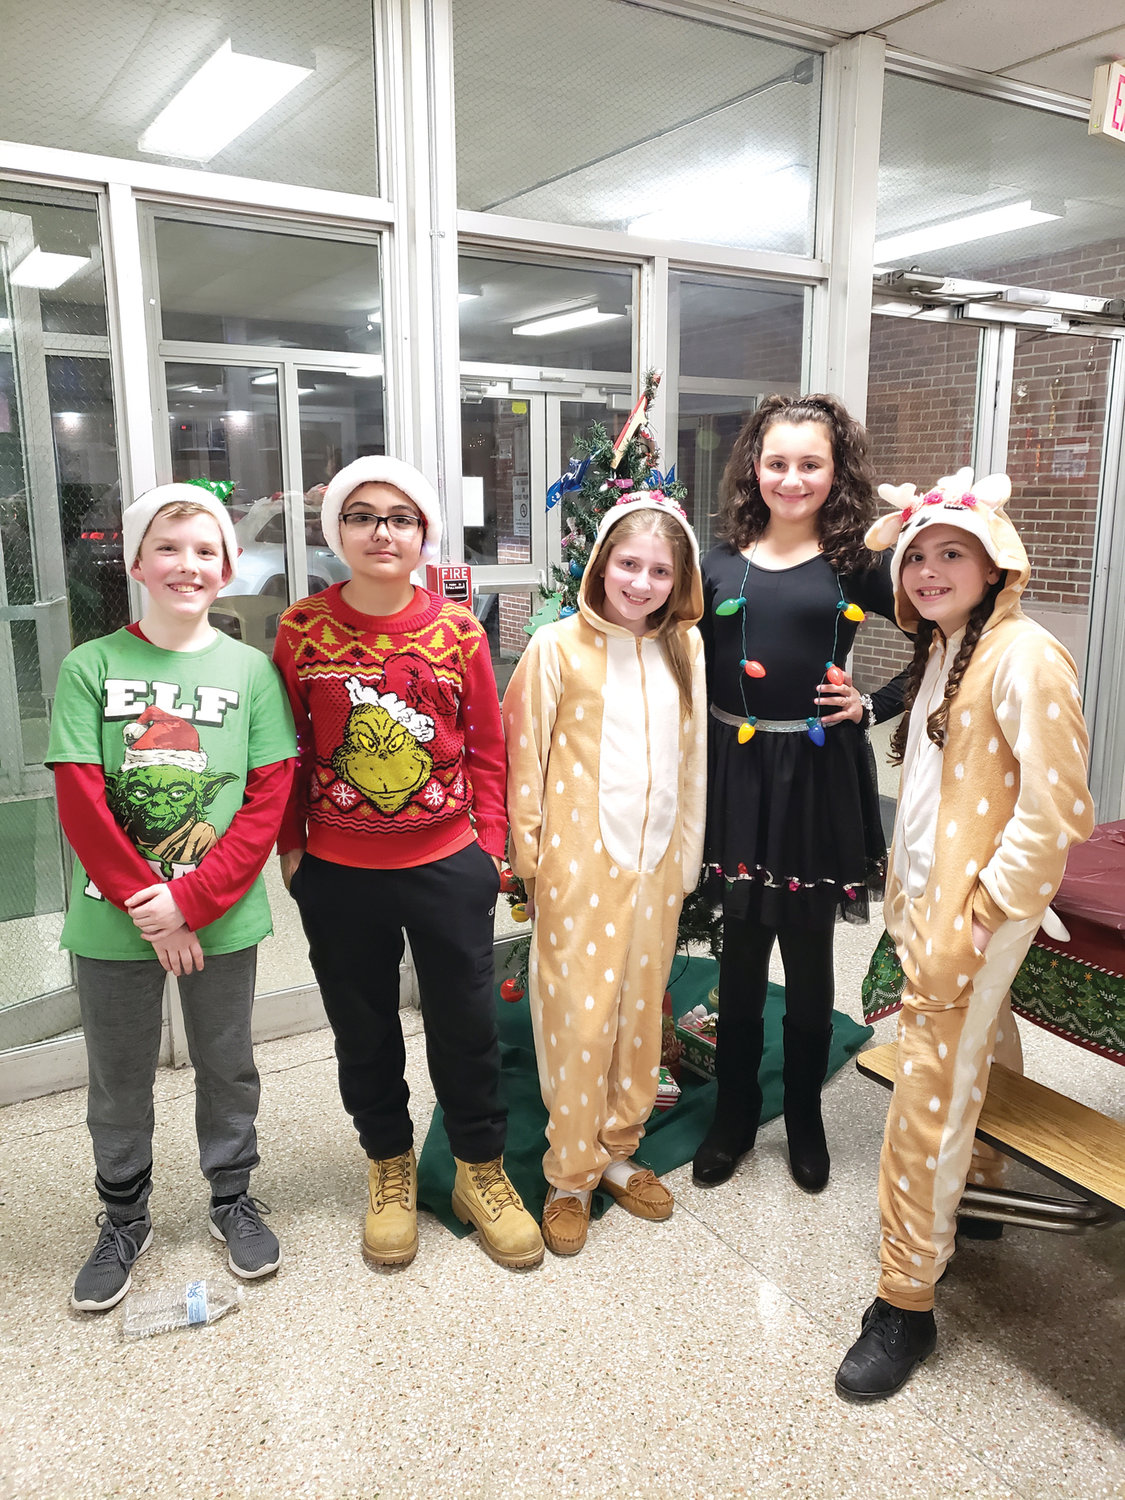 'TIS THE SEASON: Jacob Spence, Michael Pezza, Samantha Marcotte, Nicki Aucone and Kaylee Poole had a great time during last Friday's event.